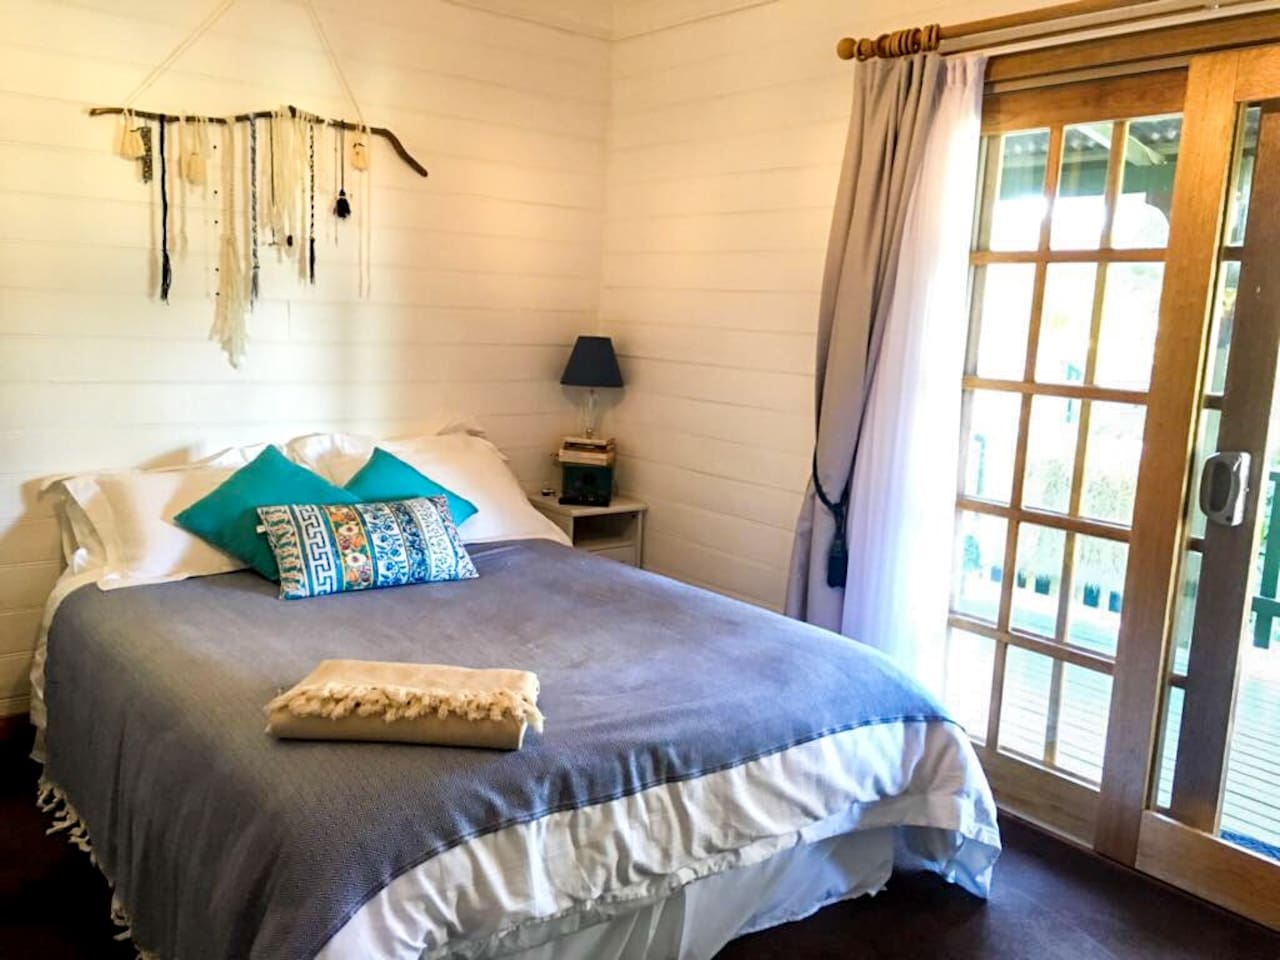 4.5* B&B on 30 acres - pillow top queen bed - white cotton 1200 thread count sheets - woollen duvet - ensuite with corner bath - Turkish towels - organic soaps - doors open onto porch - country garden views -  light brekky - aircon and heaters -